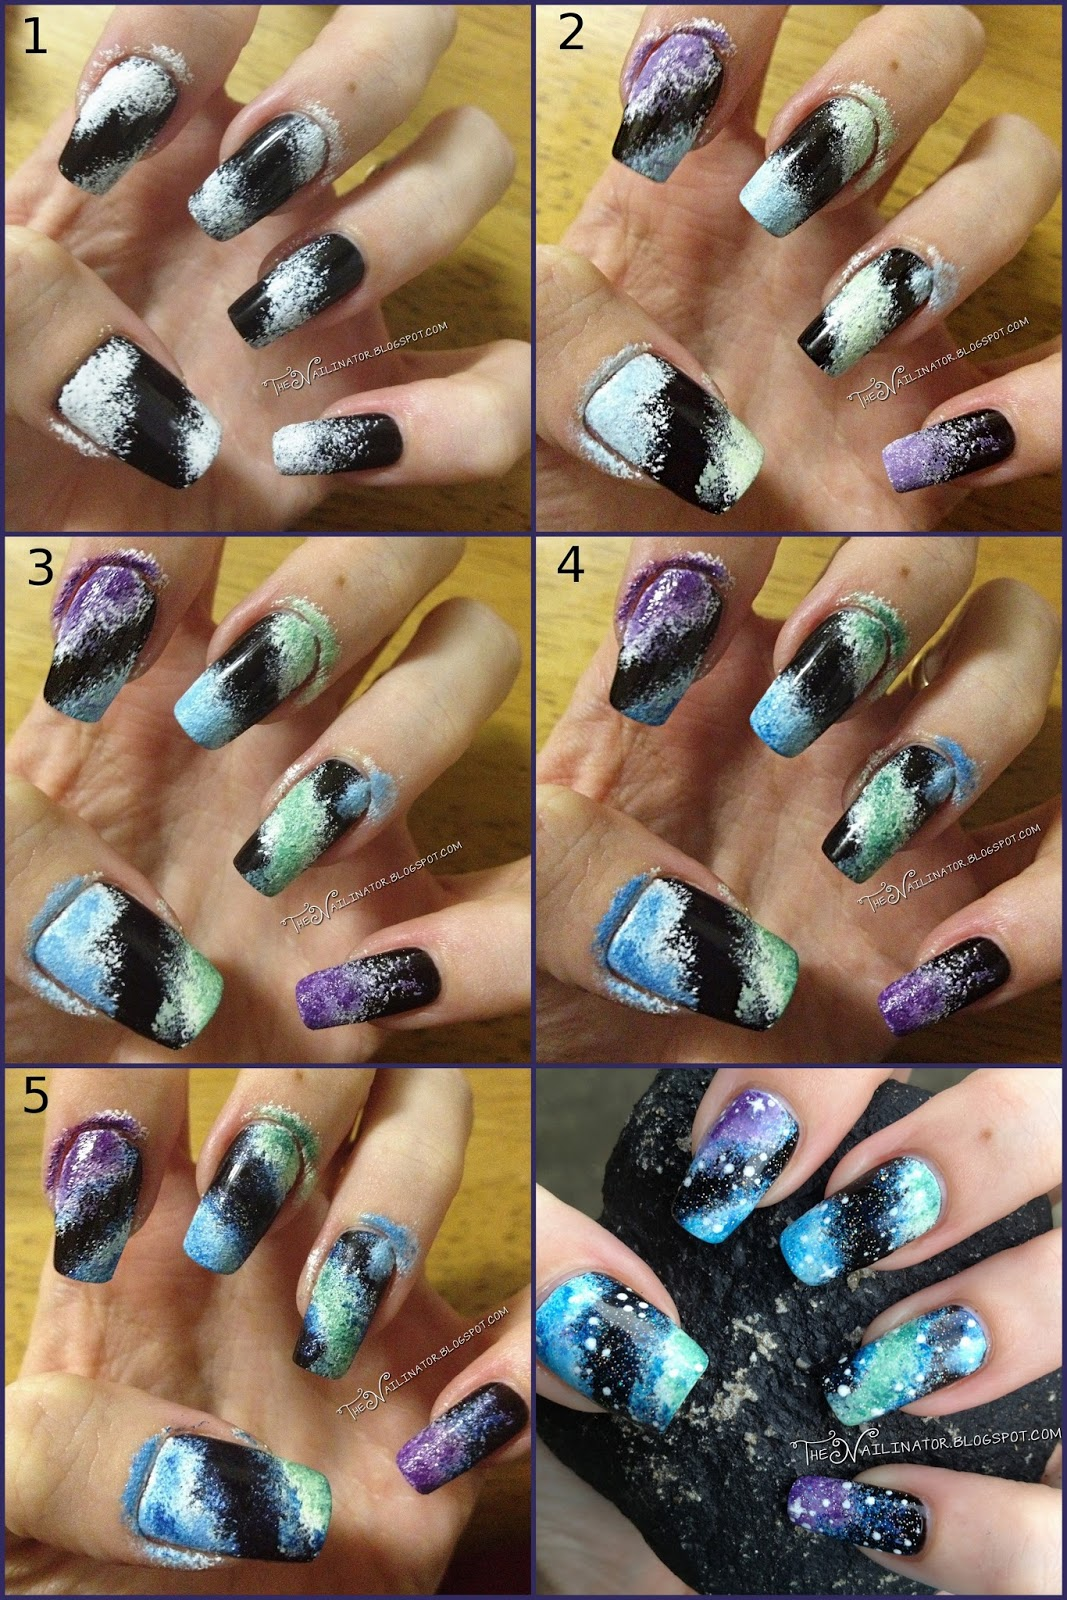 Nebula Nails Tutorial (Galaxy Nails) | The Nailinator